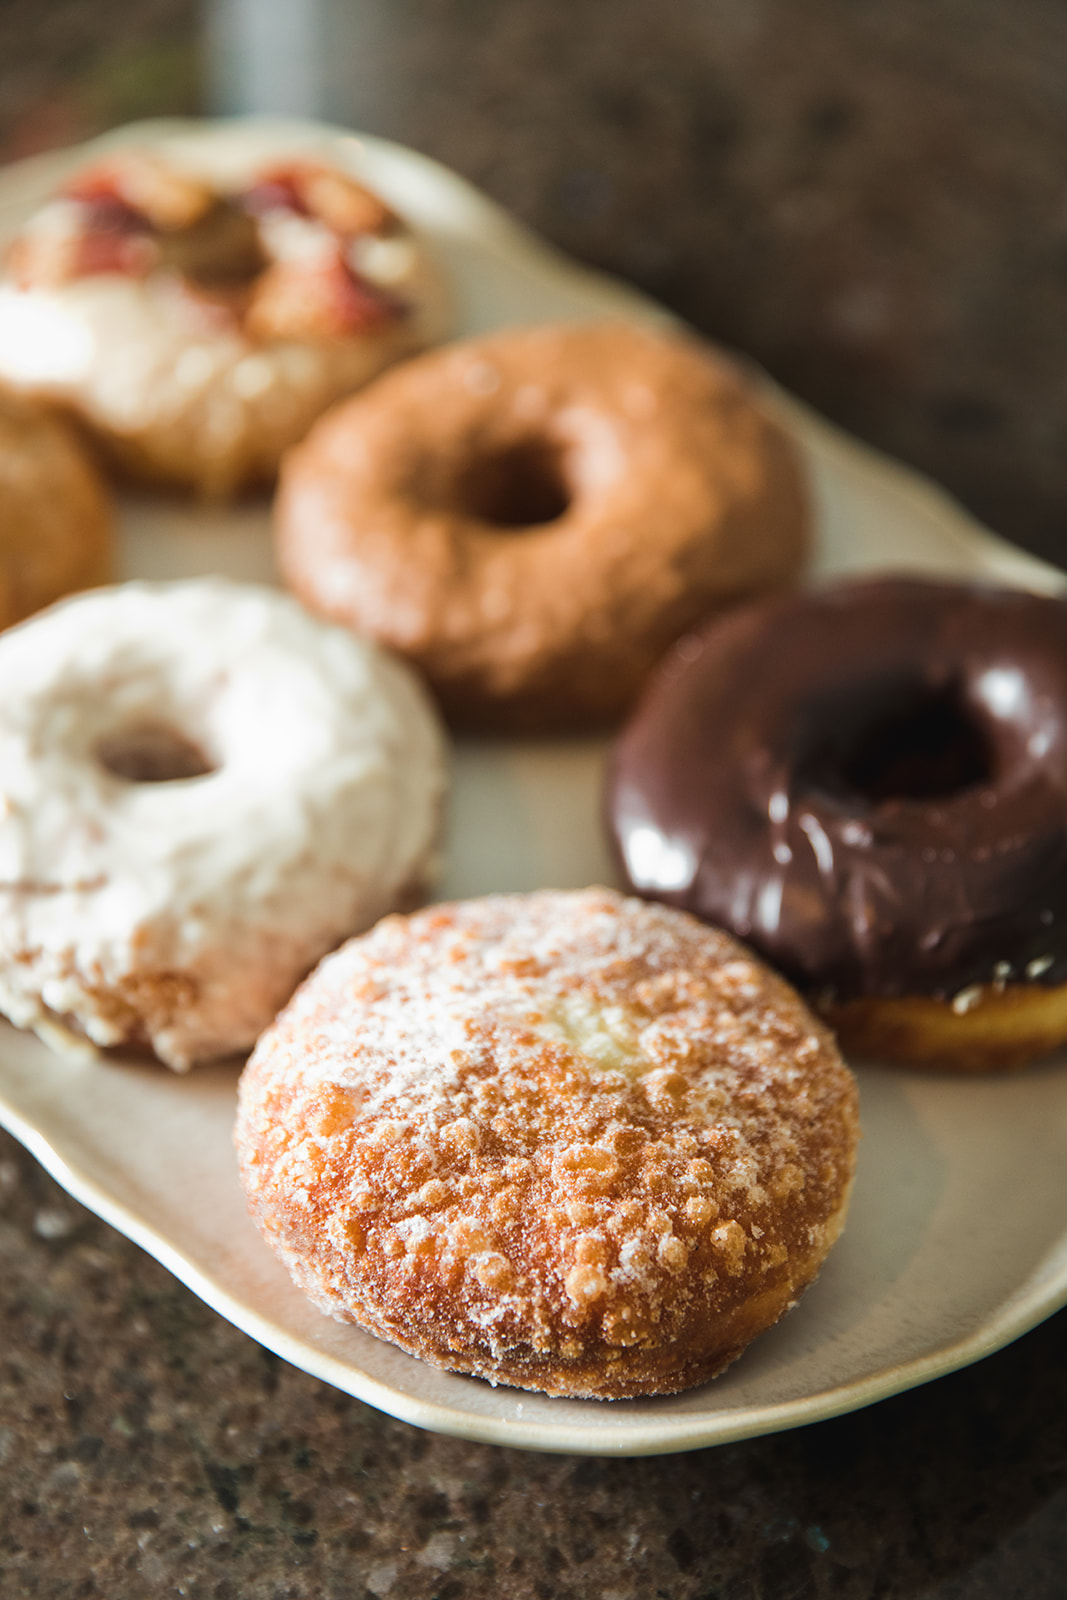 peacelovefood-Donuts-Nutrition-Counseling-Intuitive-Mindful-Eating-HAES-Health-at-Every-Size-Dietitian-EatingDisorder-Boston-Newton-MA4.jpg